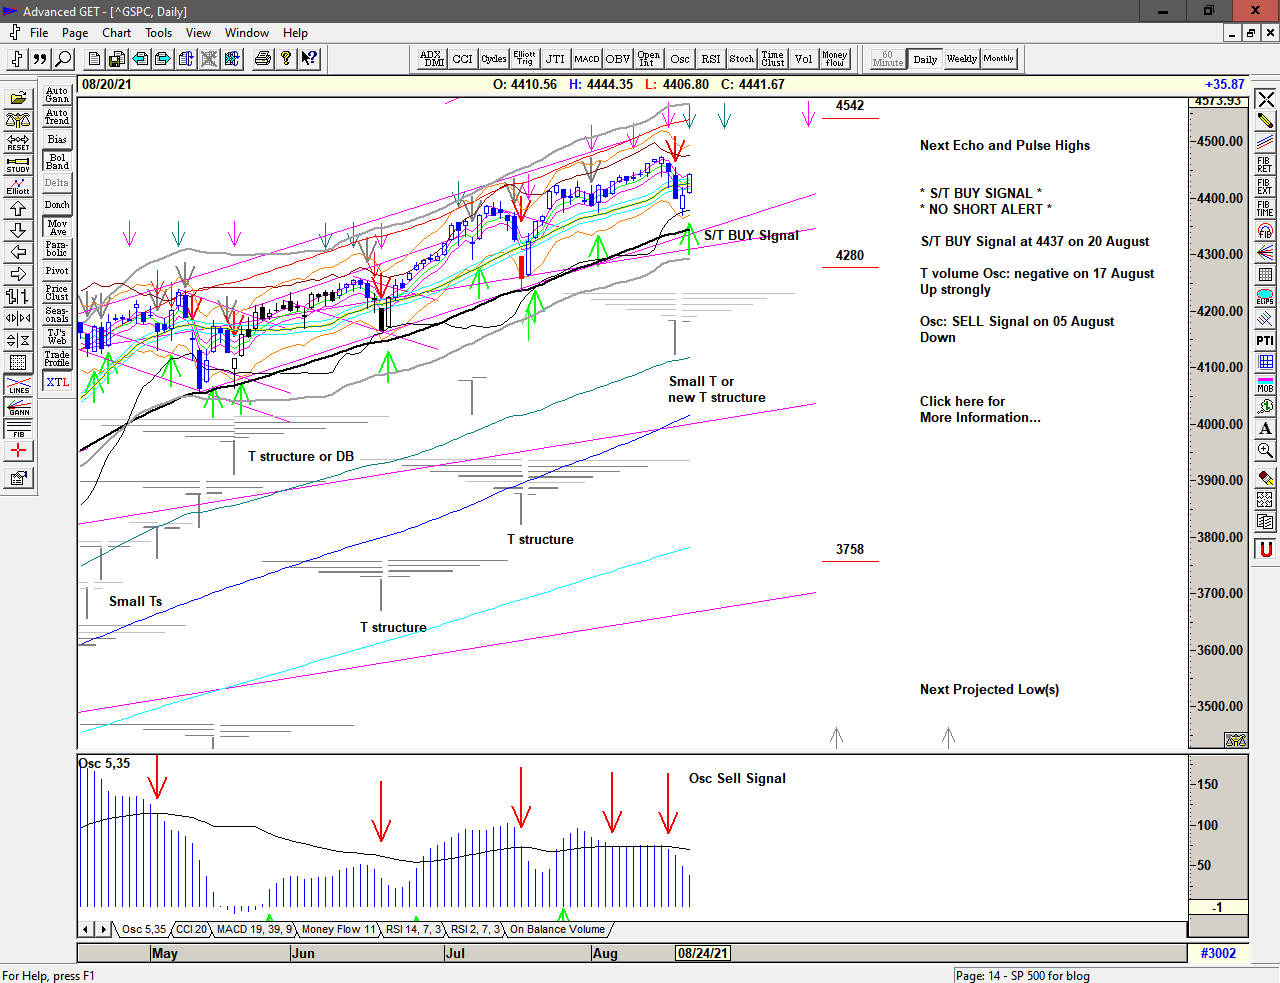 Daily chart of S&P 500 for 23 August 2021